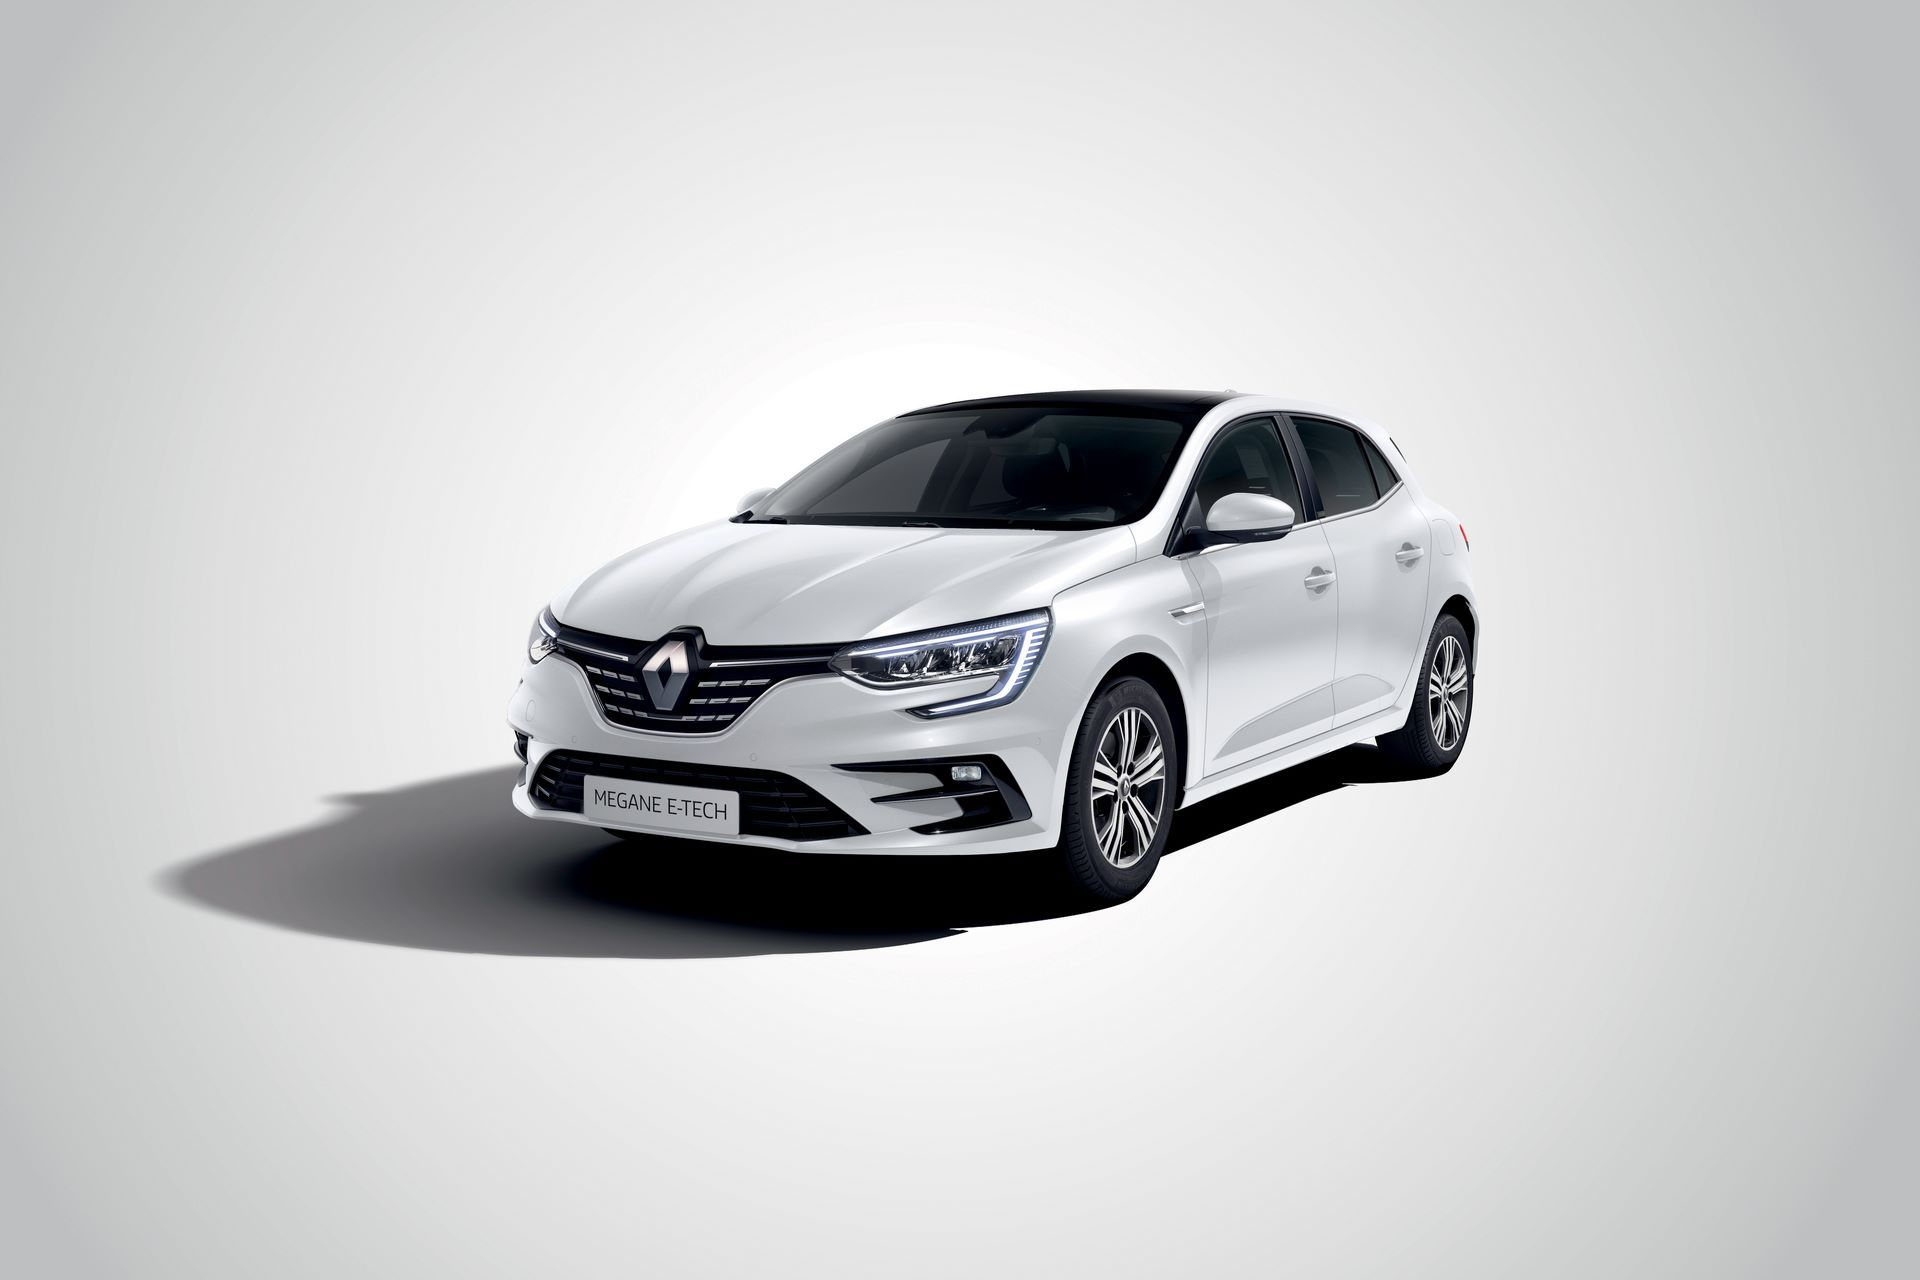 2020-New-Renault-MEGANE-Berline-E-TECH-Plug-In-Hybrid-8